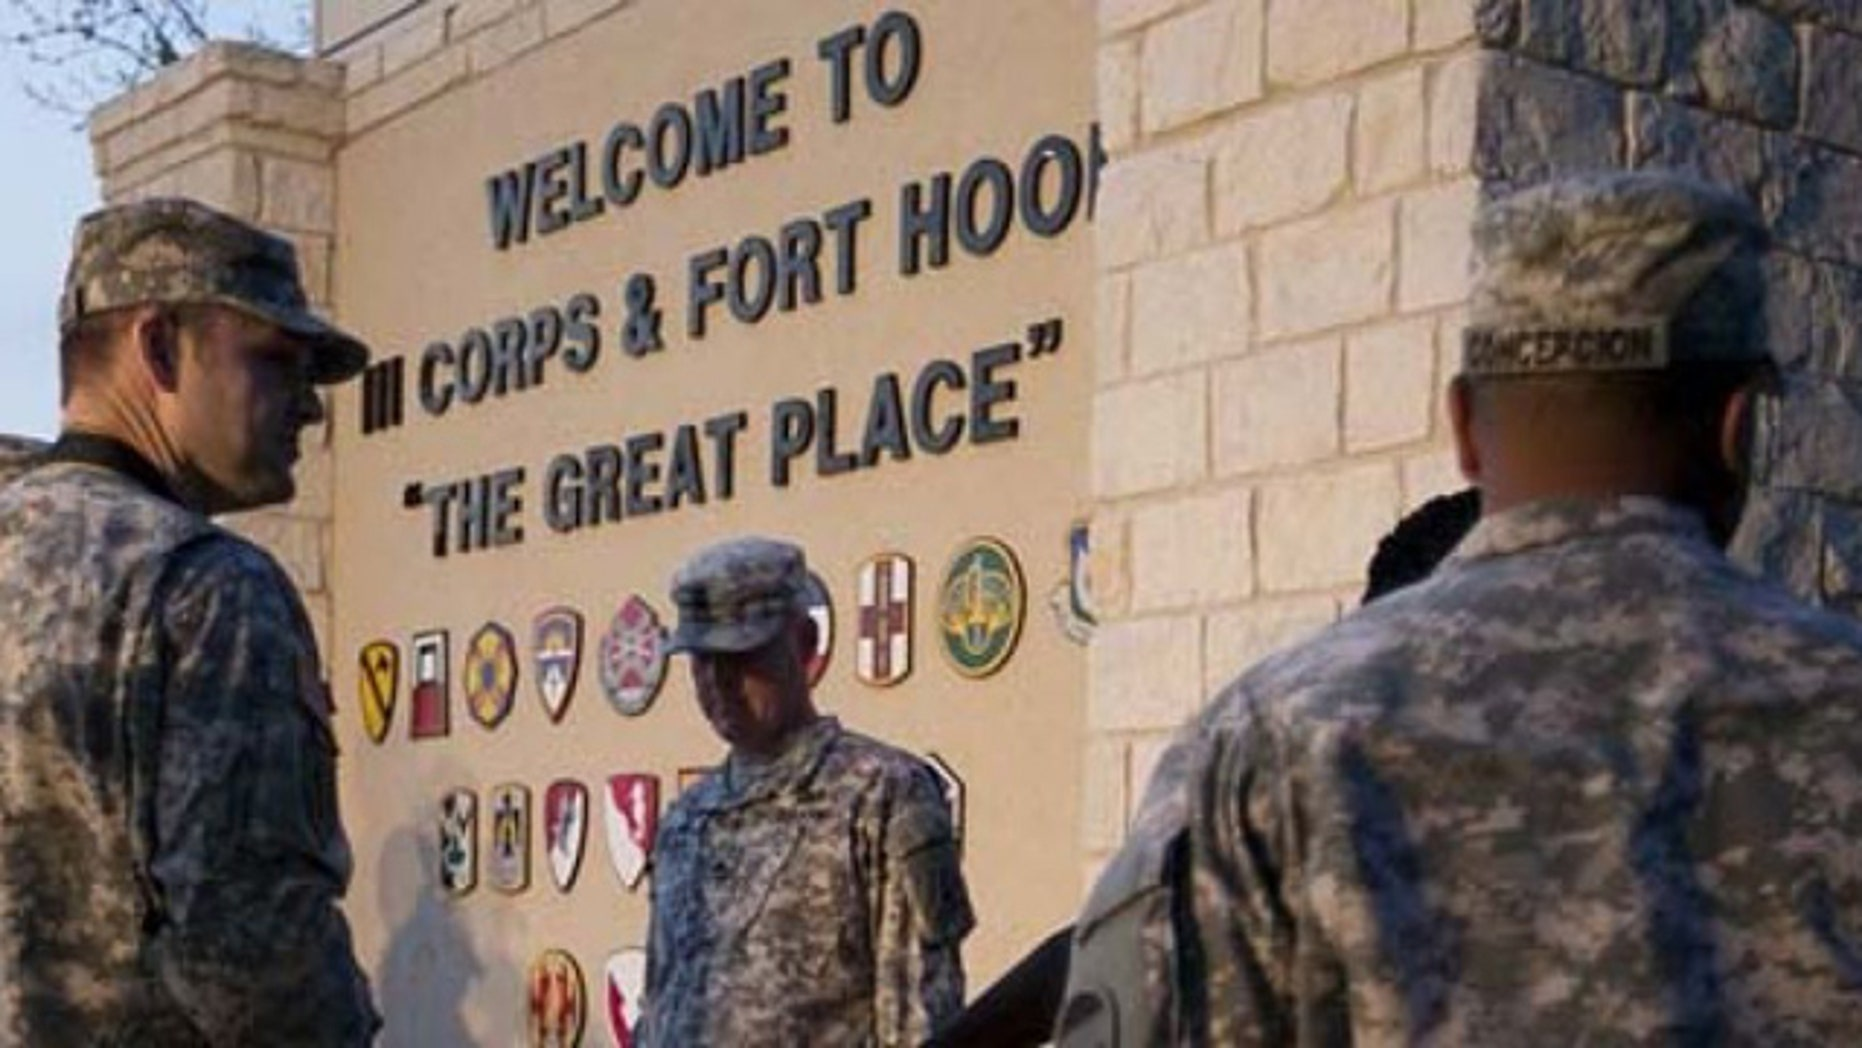 Soldiers outside the gate at Fort Hood, Texas. (AP)